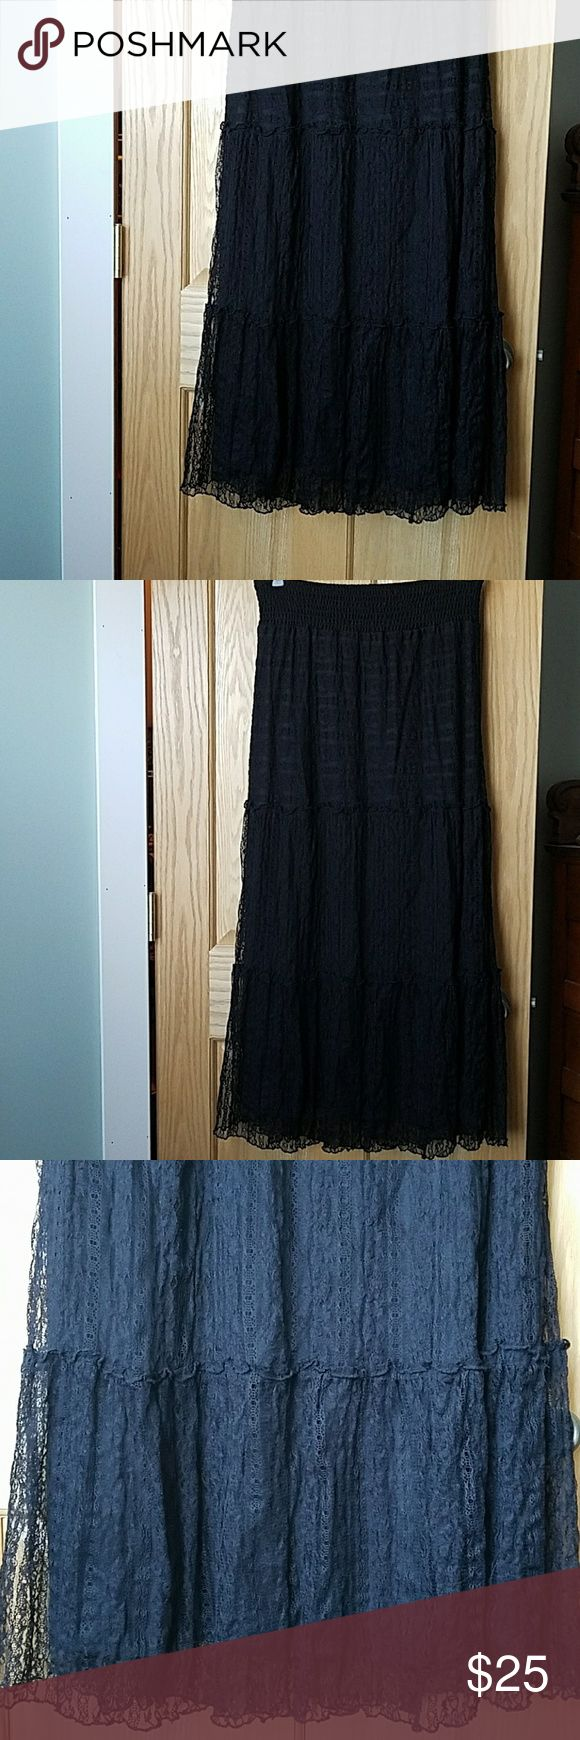 """ALYX Lace Maxi Skirt EUC ALYX Lace Maxi Skirt, size L. Worn only once. Fully lined and overlayed with delicate tiered lace. Waist is stretchy with smocked elastic. There are no snags or pulls in the lace.  Approximate measurements Waist 15 1/2"""" could stretch up to 20"""" Length 40"""" Alyx Skirts Maxi"""